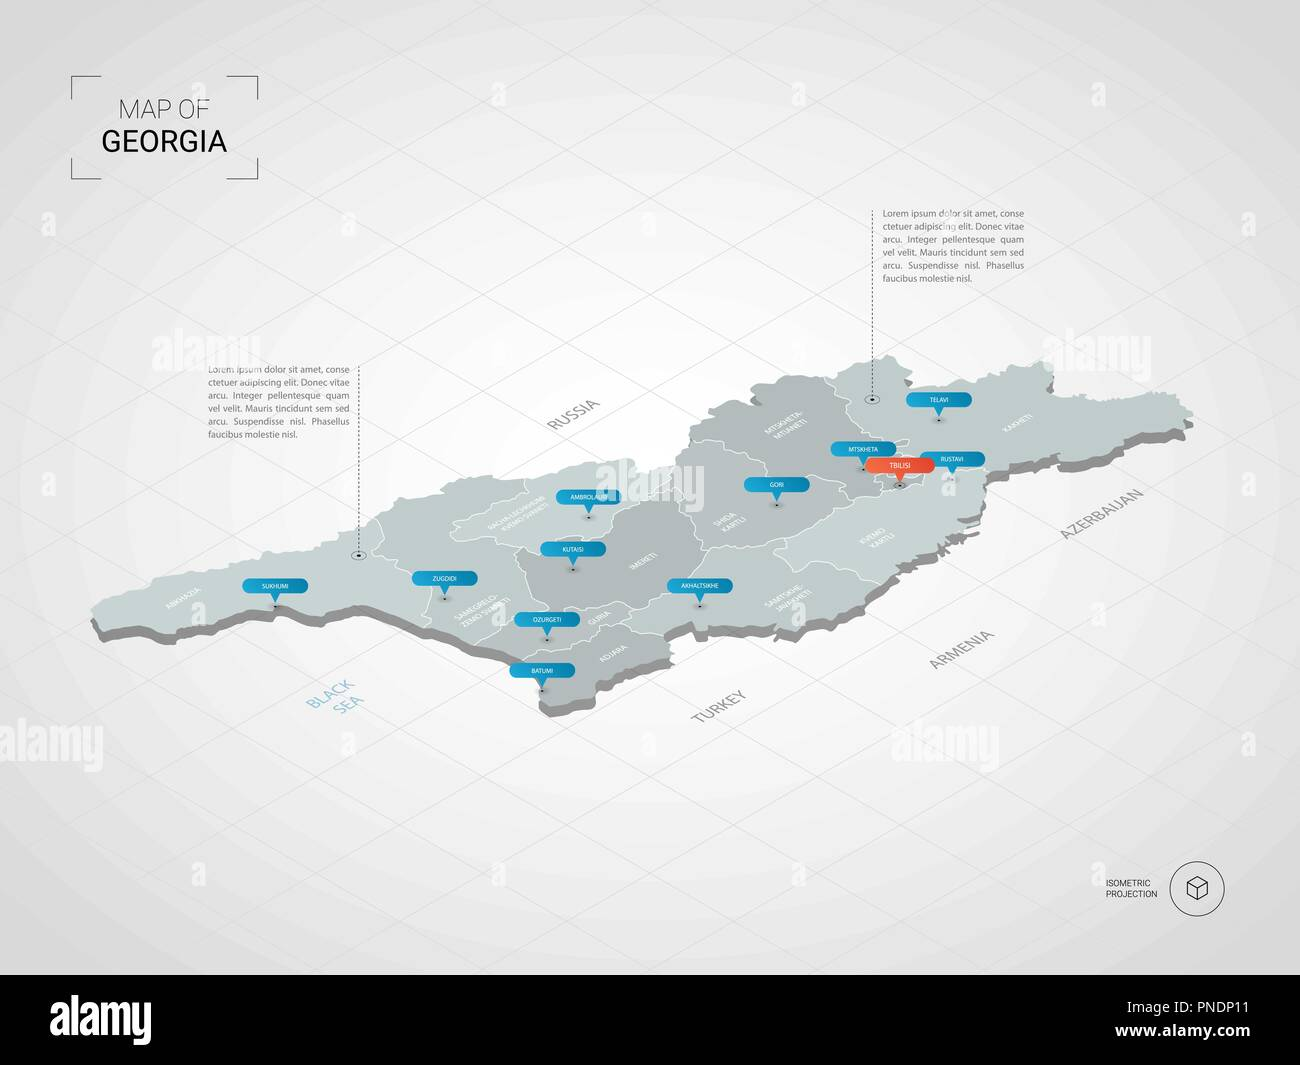 Map Of The Cities In Georgia.Isometric 3d Georgia Map Stylized Vector Map Illustration With